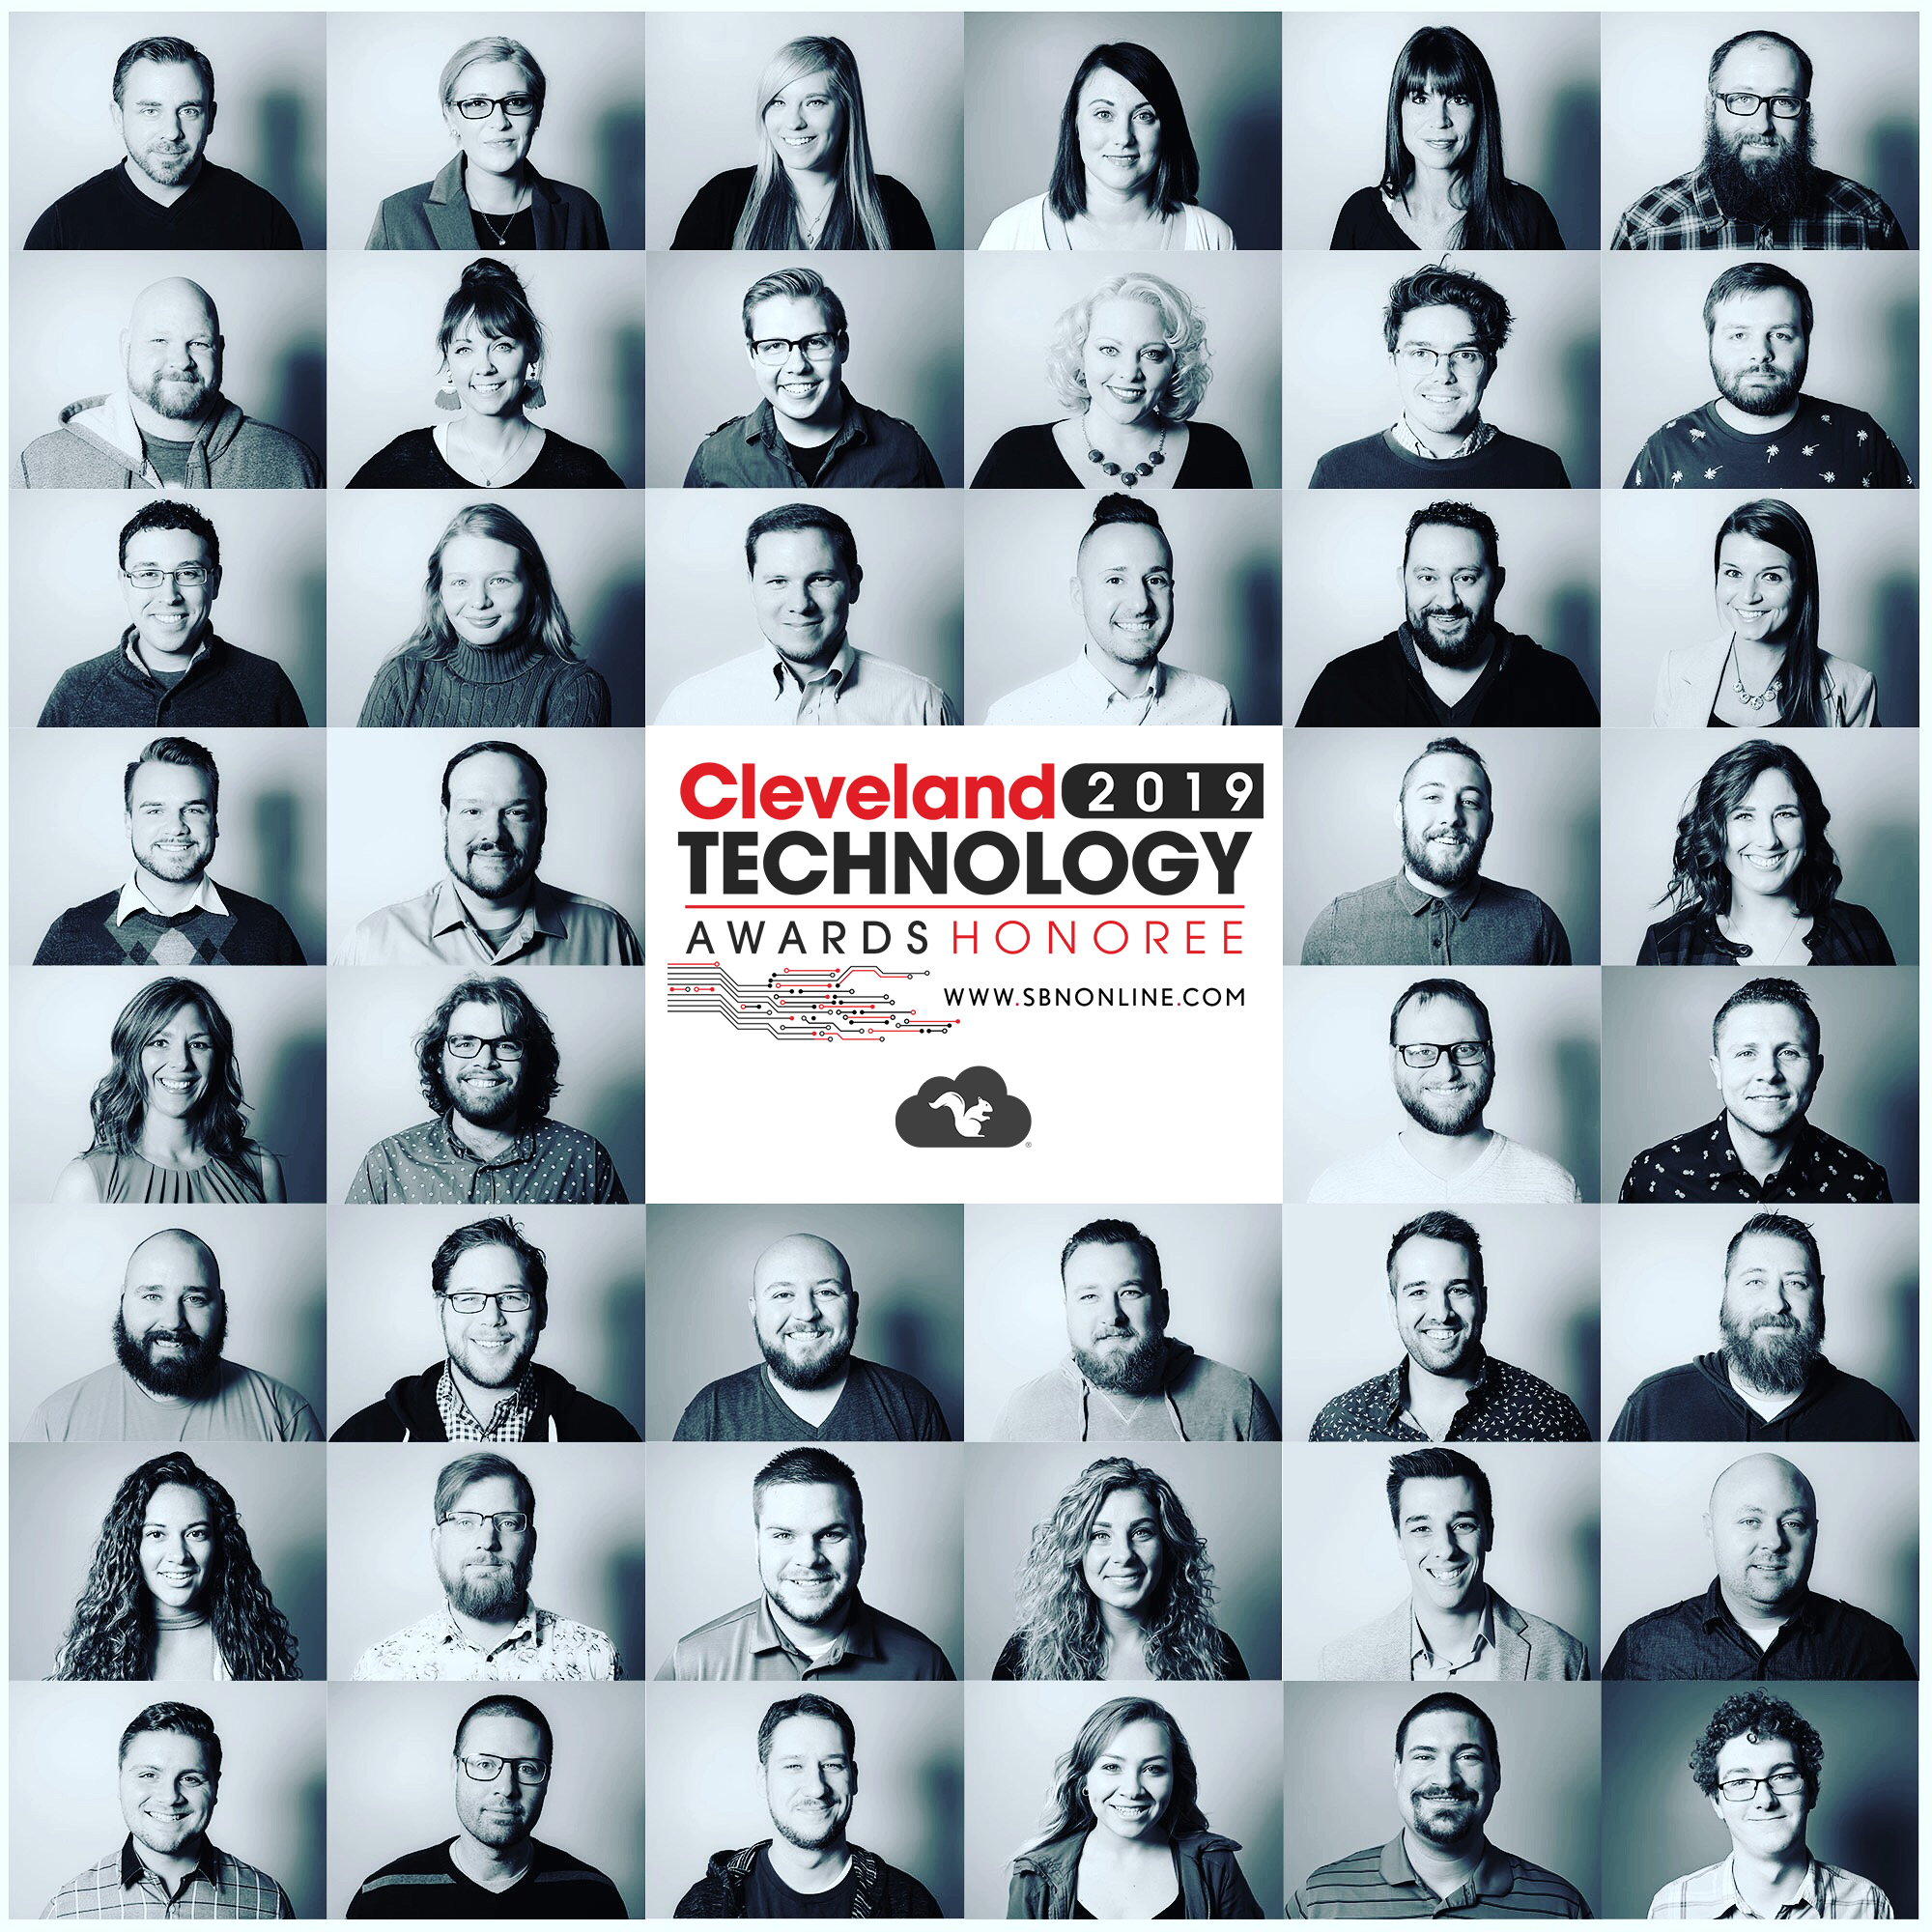 Squirrels Wins 2019 Cleveland Technology Award